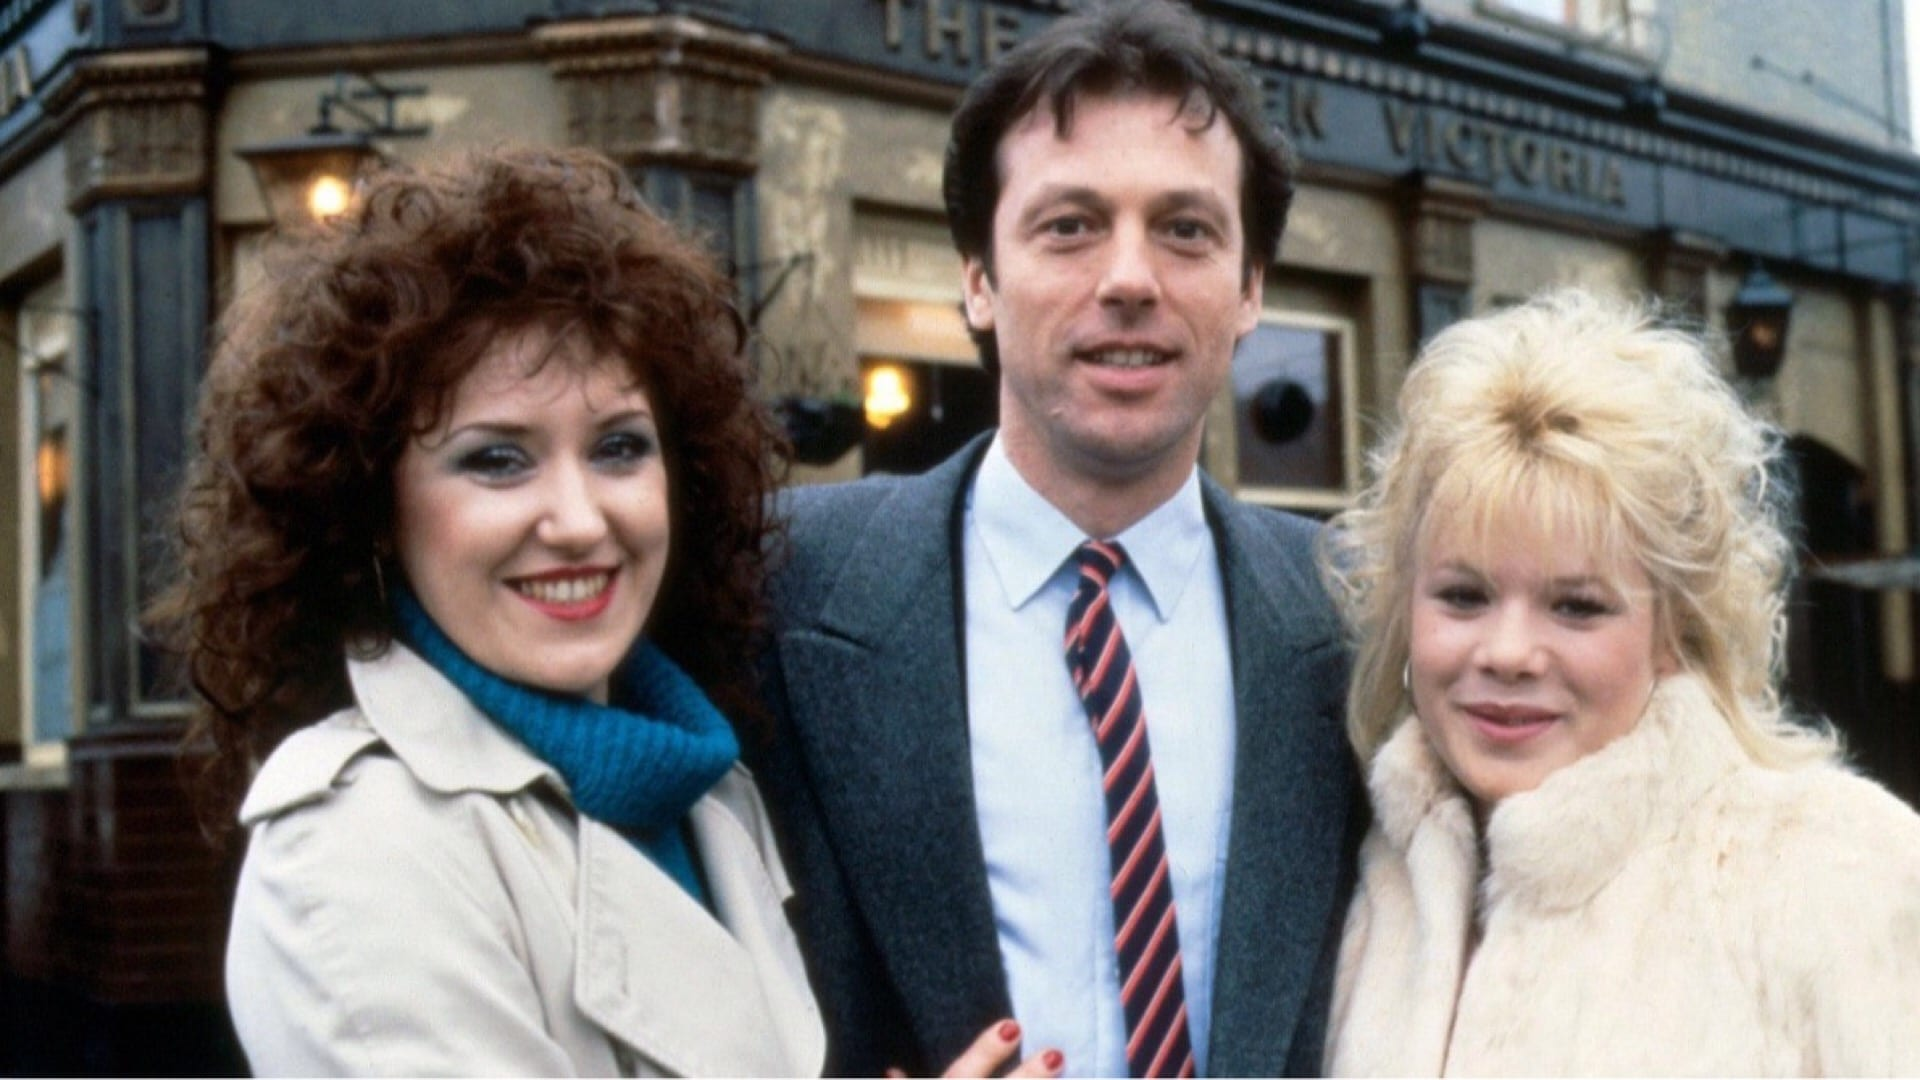 EastEnders - Season 10 Episode 60 : June 23, 1994